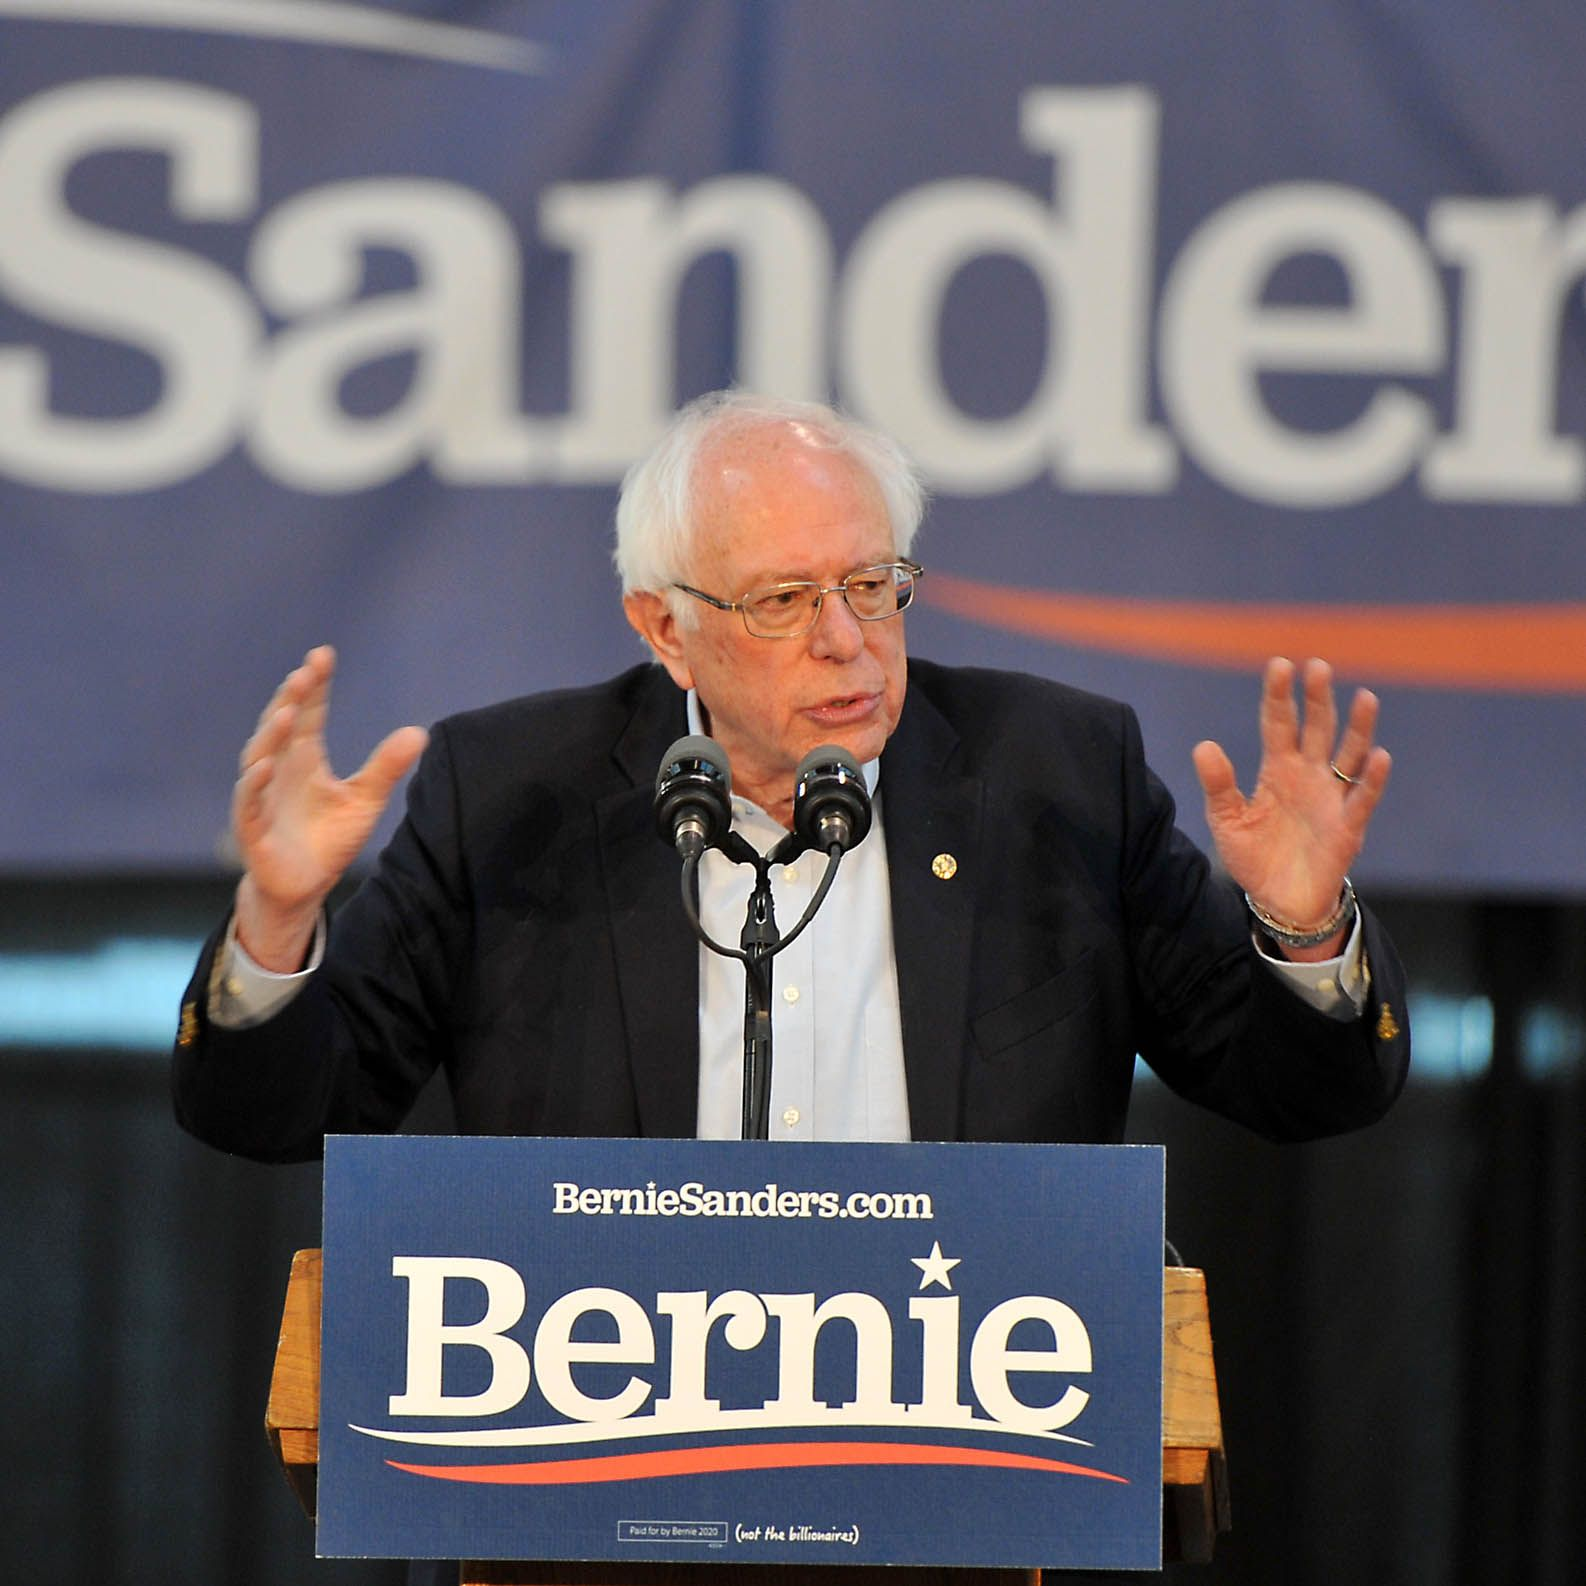 The Democratic Party is moving left to keep up with Bernie Sanders.